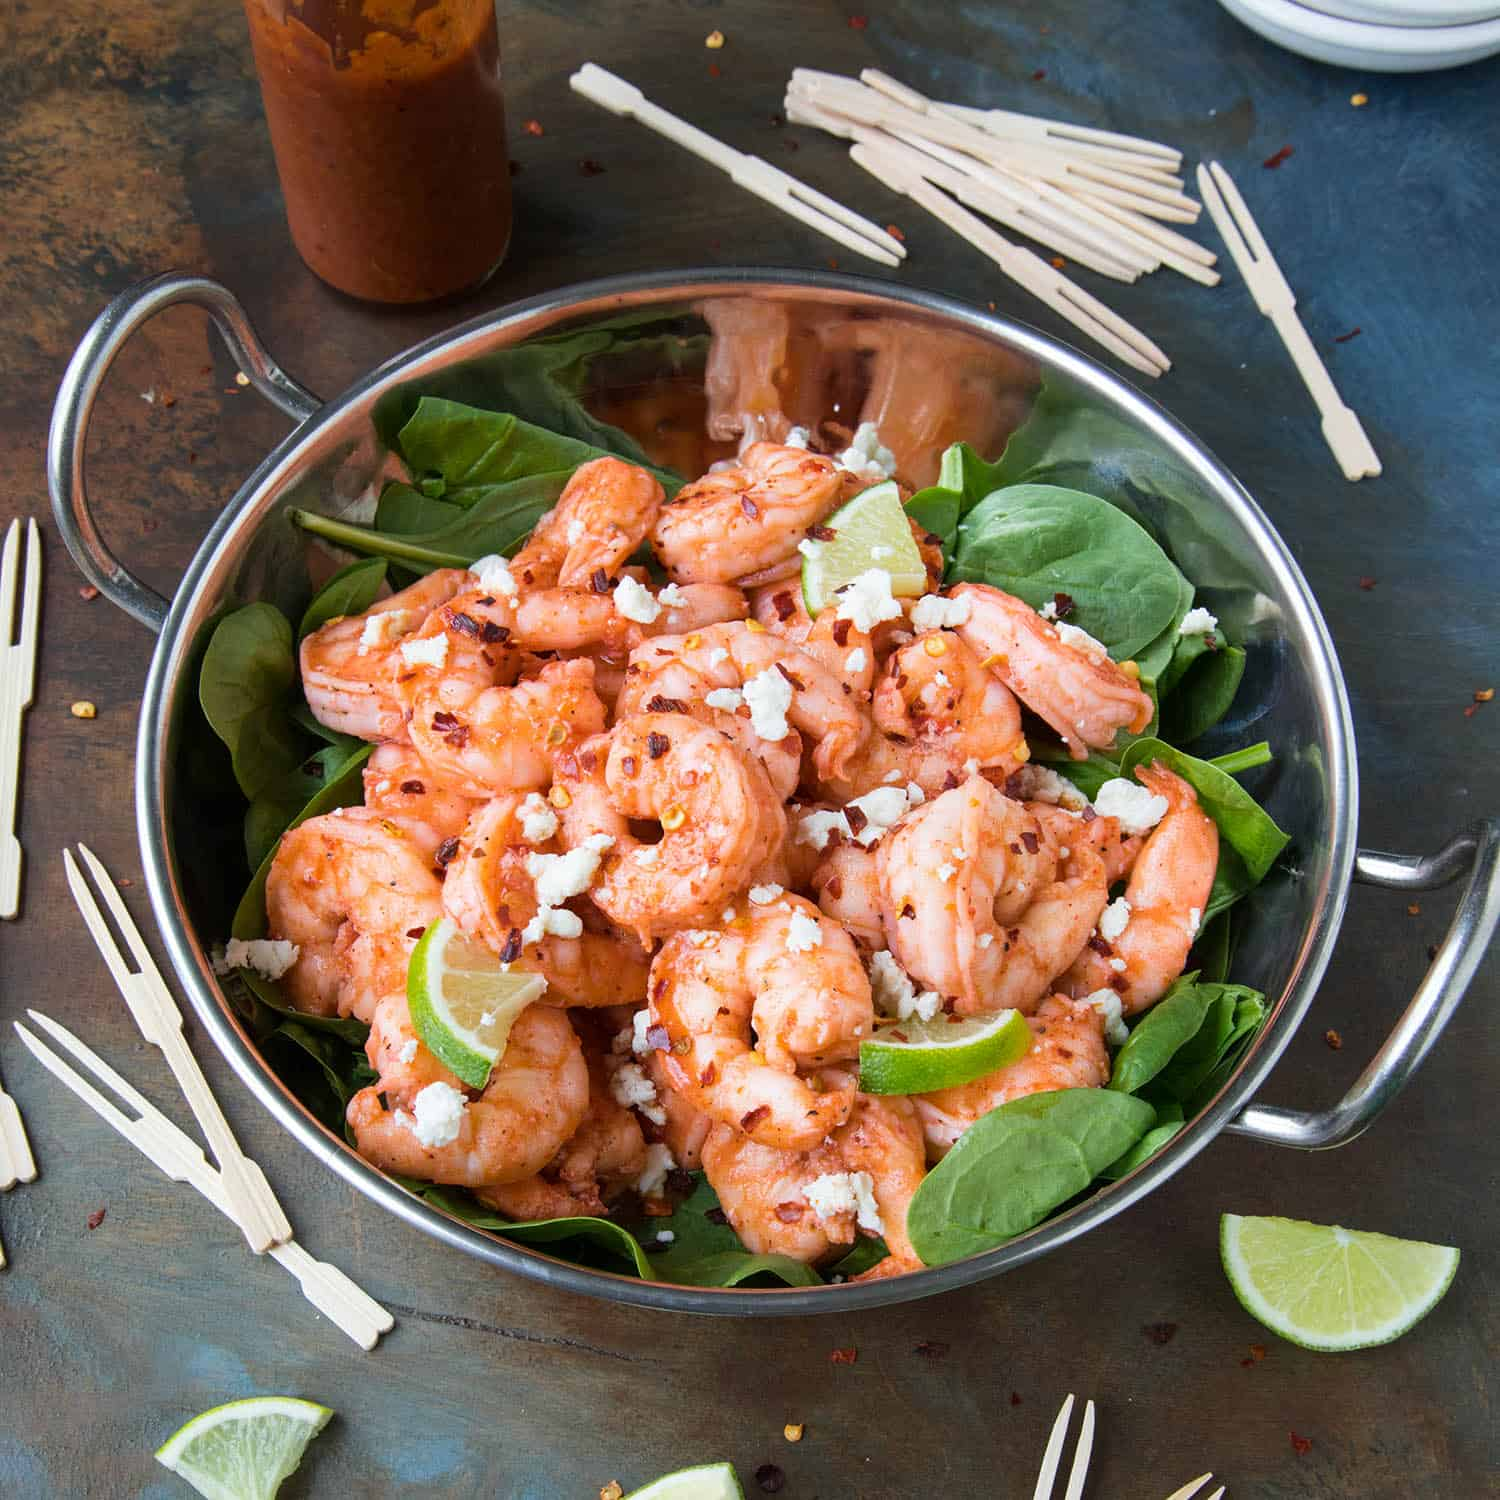 Grilled Buffalo Shrimp in a bowl over spinach leaves - they satisfy everyone.